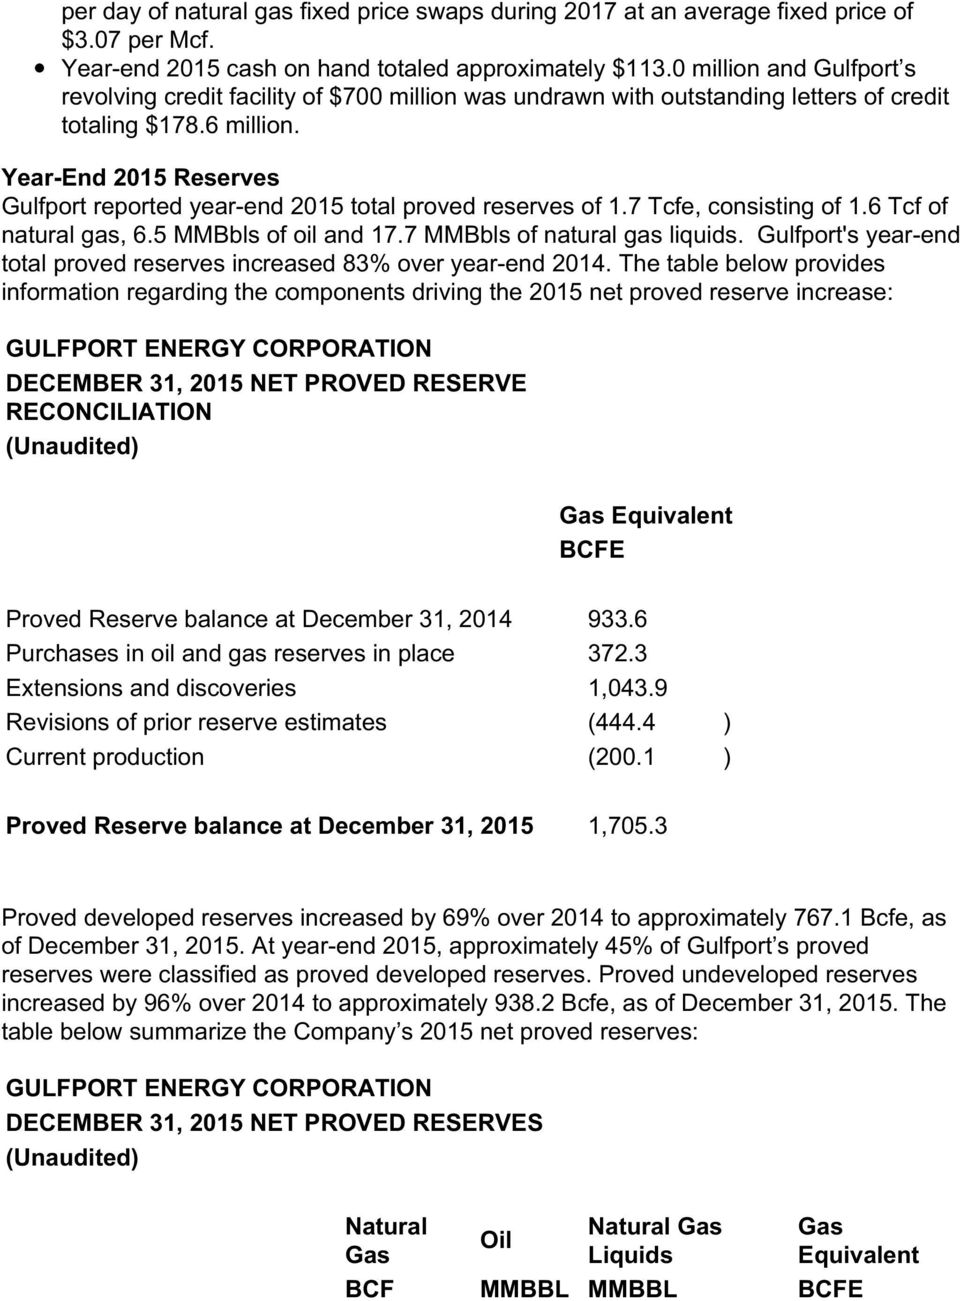 Year-End 2015 Reserves Gulfport reported year-end 2015 total proved reserves of 1.7 Tcfe, consisting of 1.6 Tcf of natural gas, 6.5 MMBbls of oil and 17.7 MMBbls of natural gas liquids.